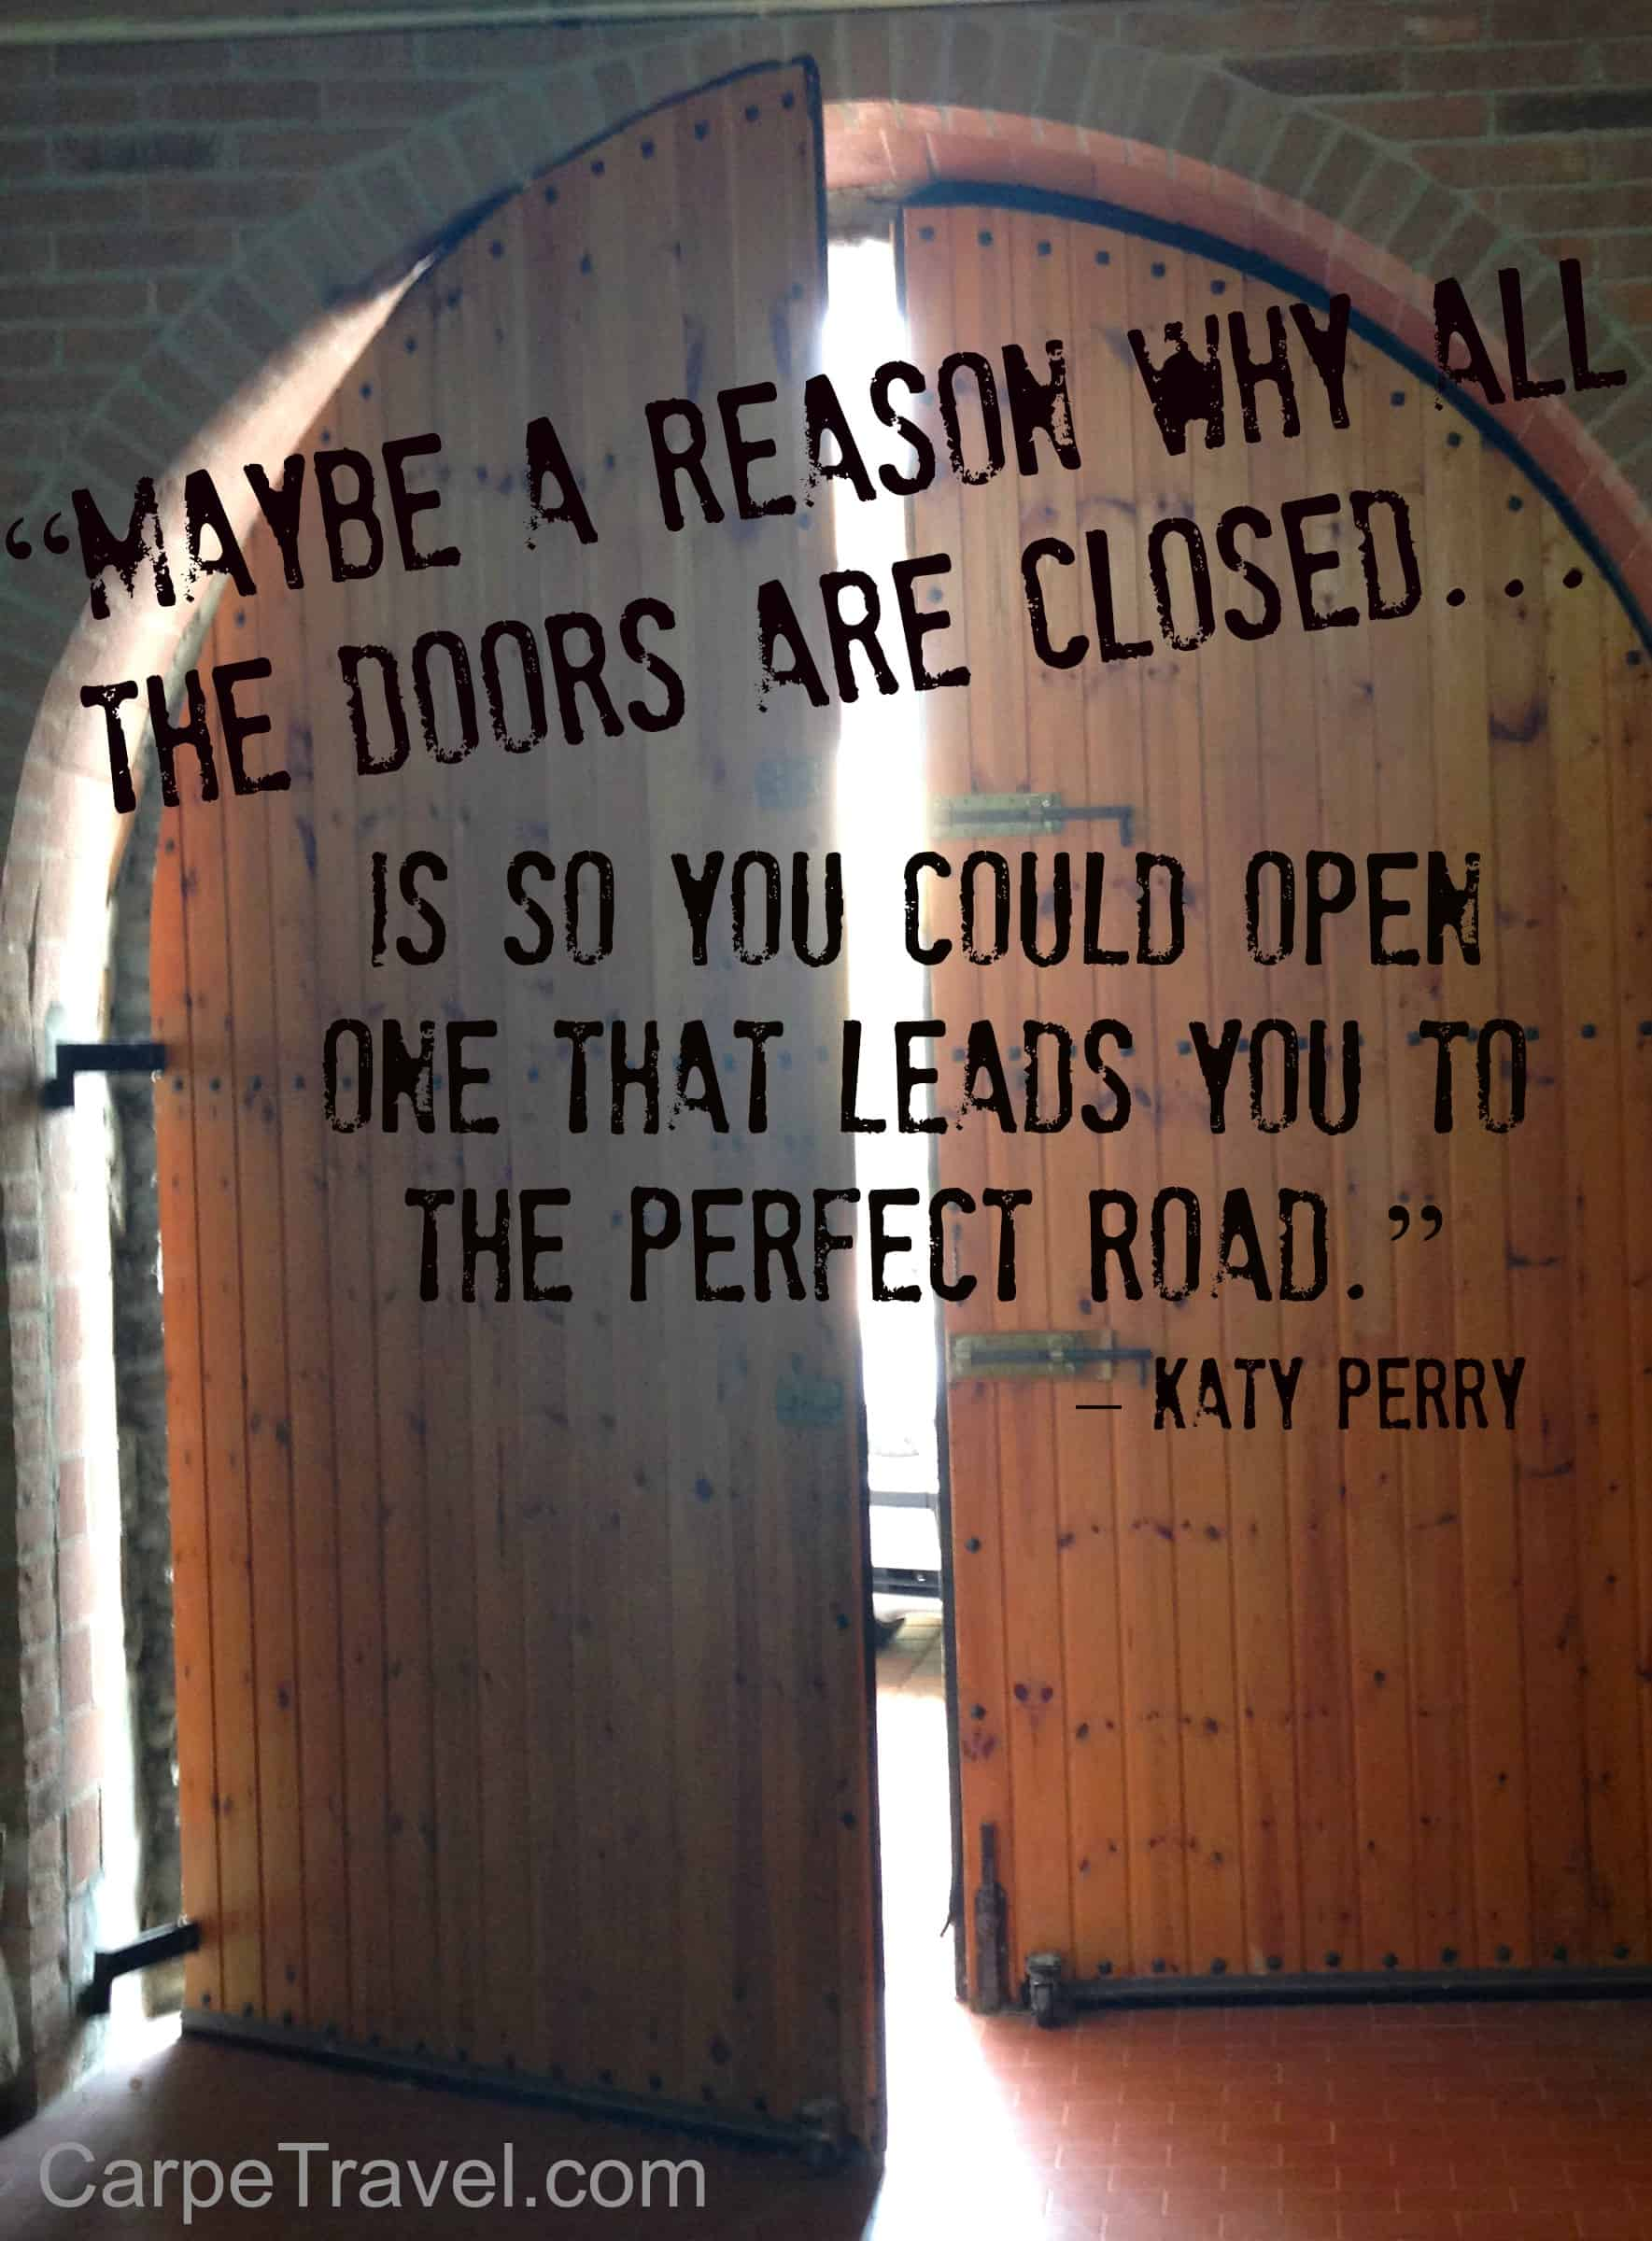 Quotes About Doors Behind Every Door & Window There Is A Story…